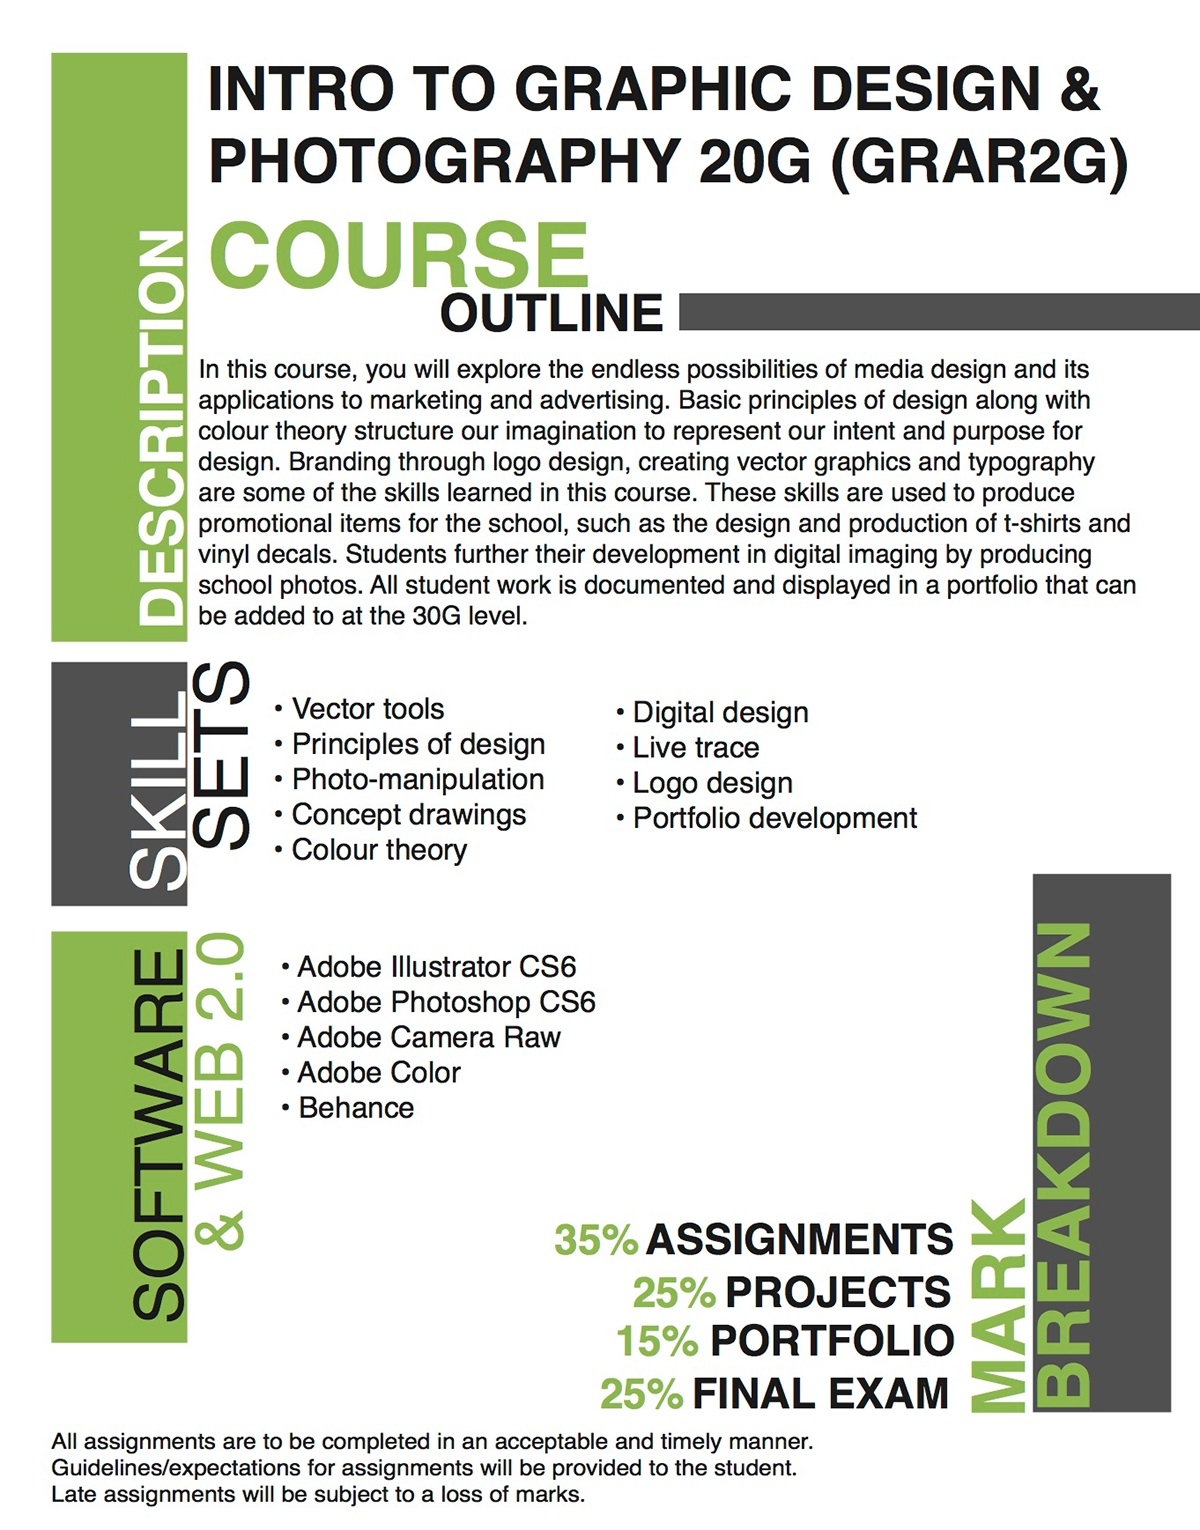 course outline for graphic design